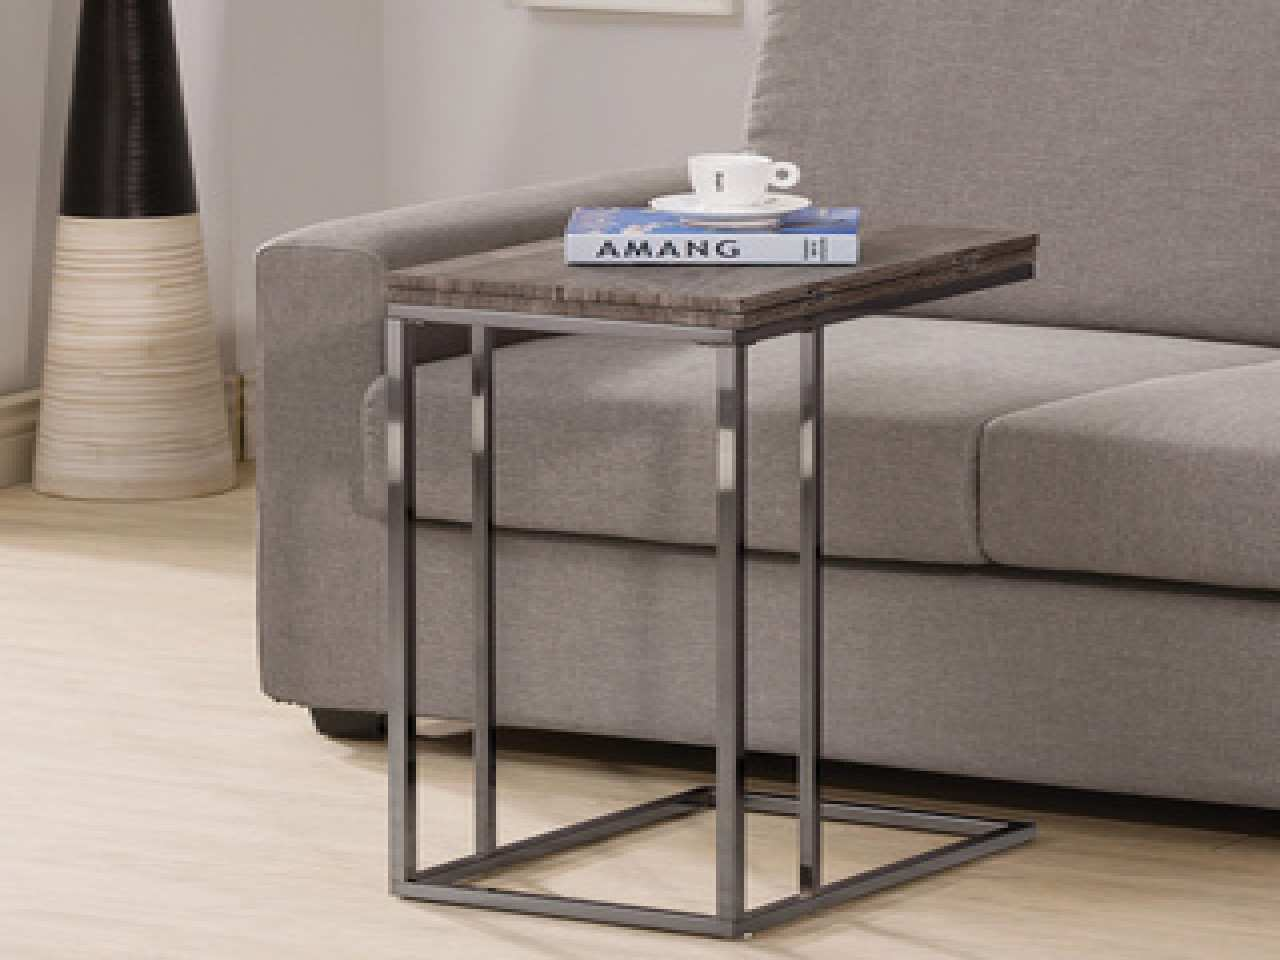 elegant side tables for small spaces nontraditional uses stunning tray expandable end table console dining accent white half moon corner cabinet glass ikea night wood cube bar